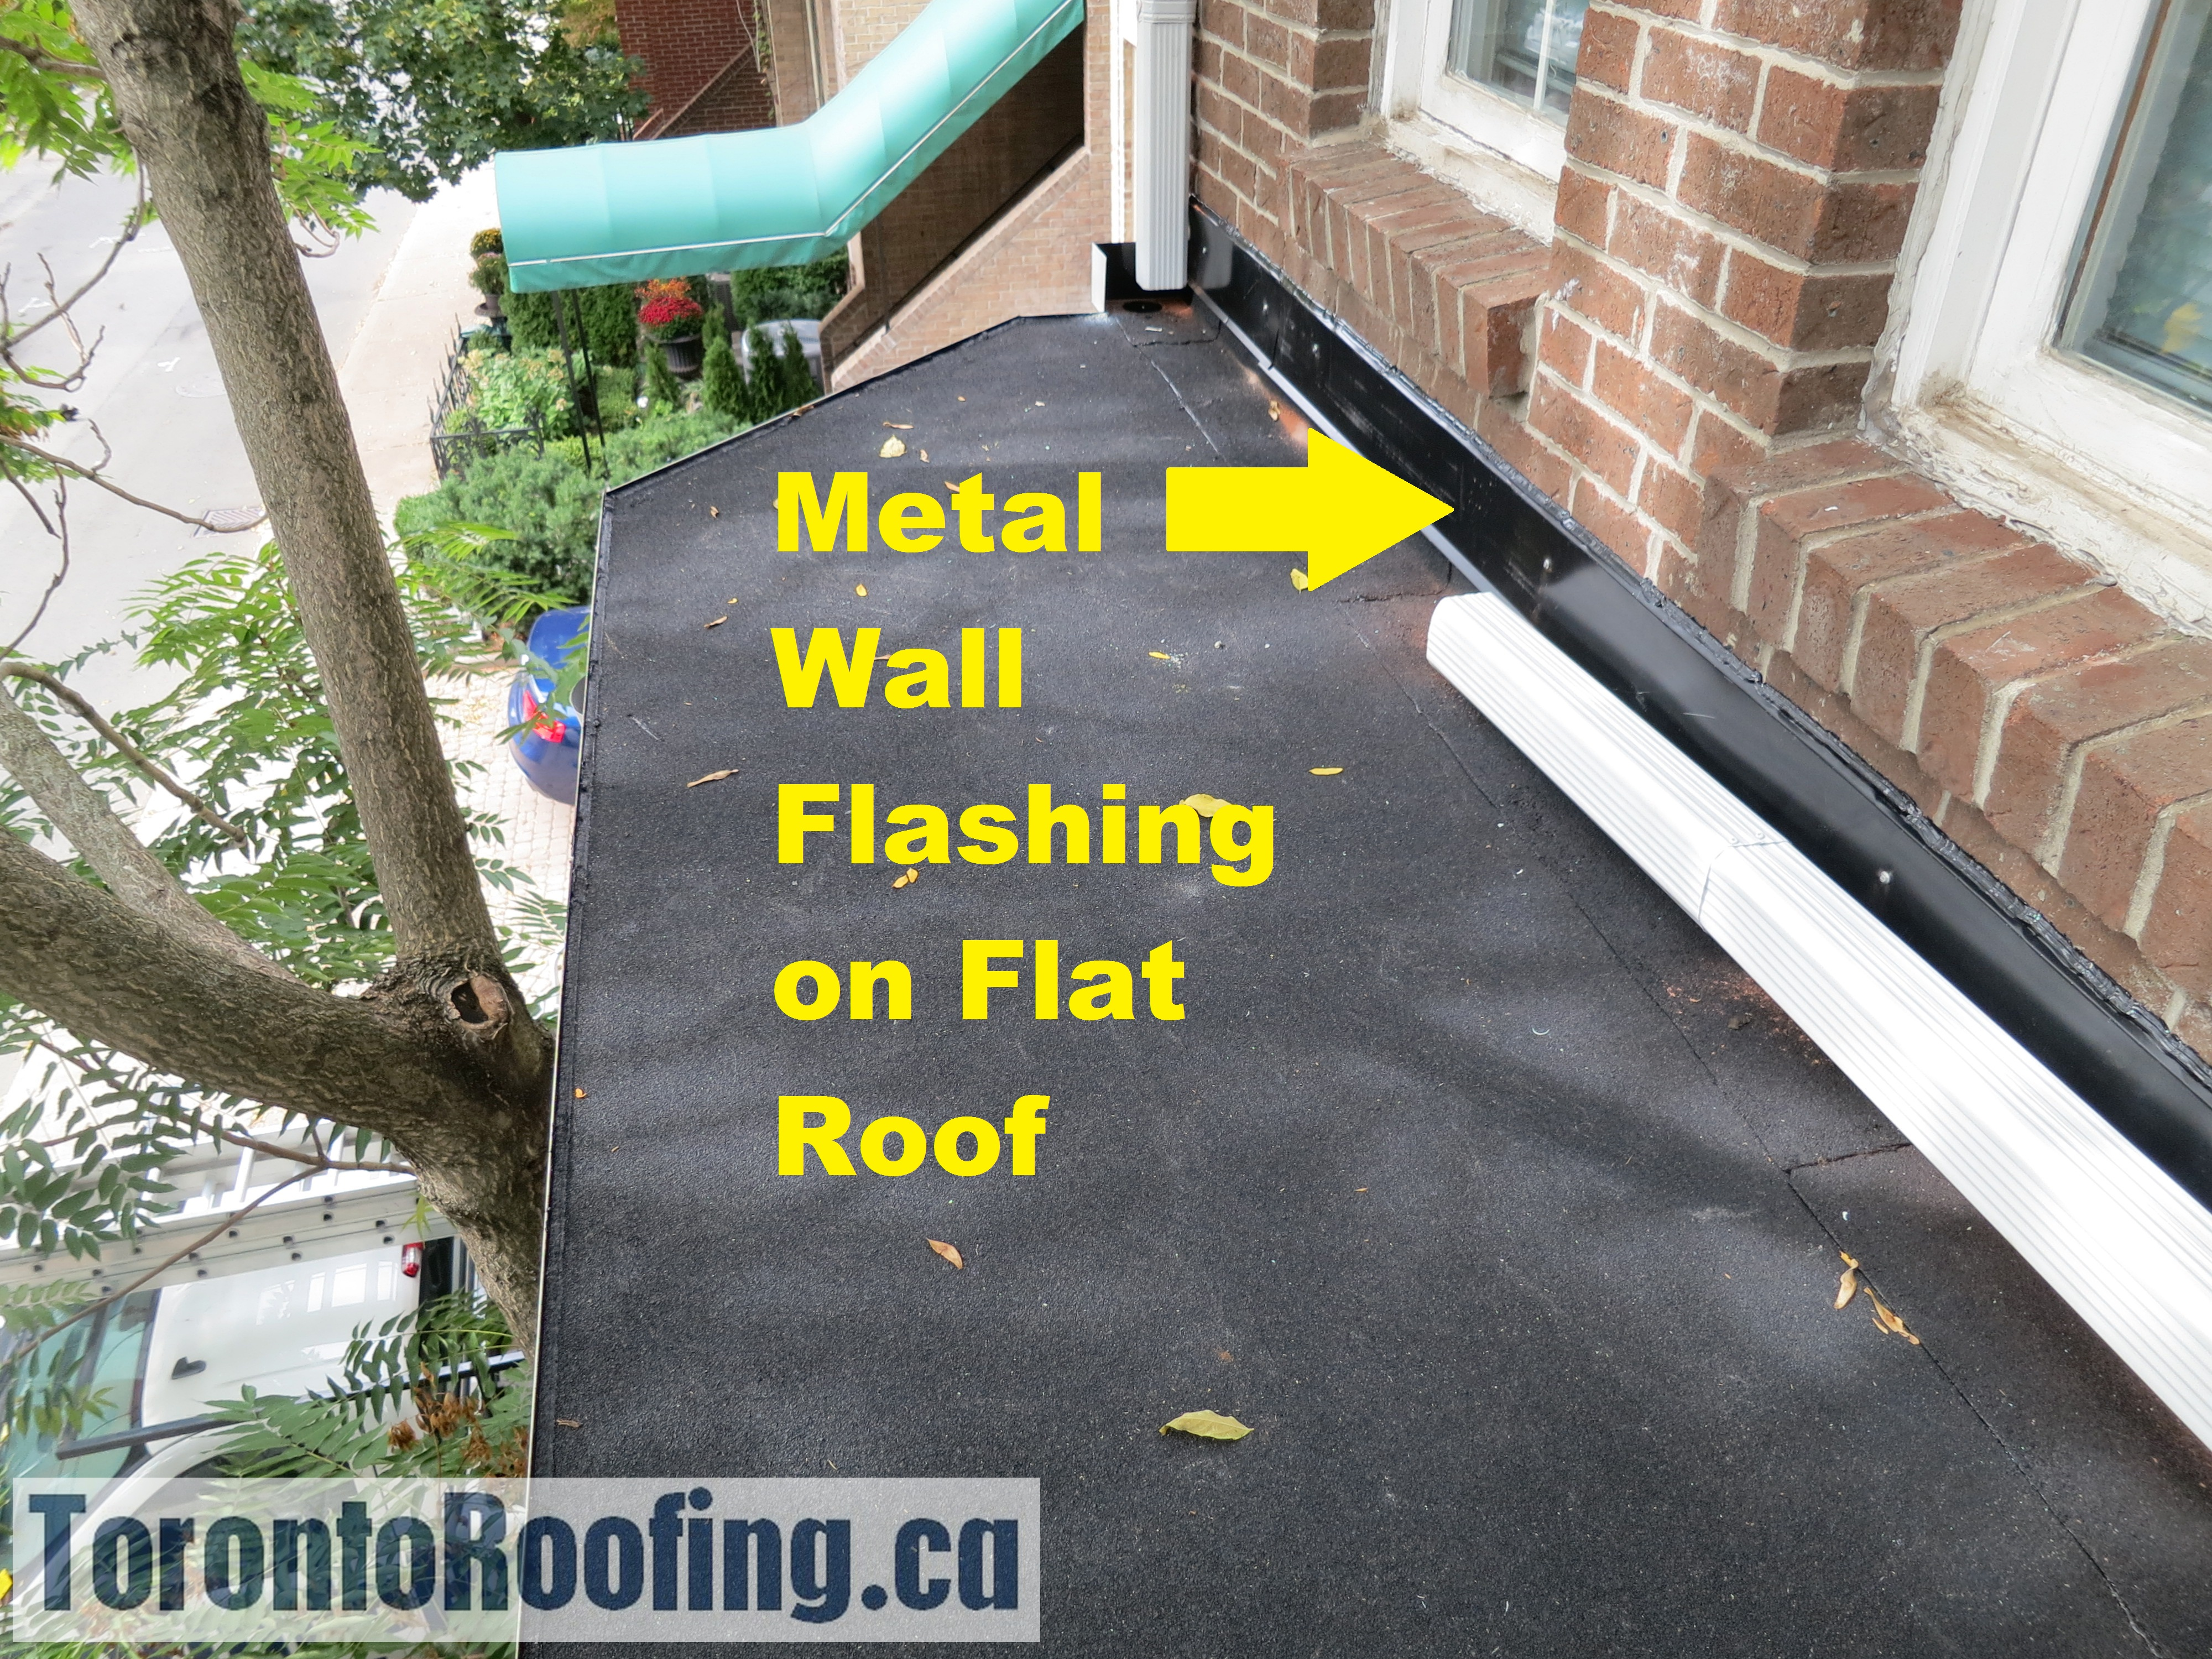 Toronto roofing flat roof modified bitumen skylight flashing gutters eavestrough shingles ice water shield grace flashing flat roof diagram roofing custom metal flashing torontoroofing ca